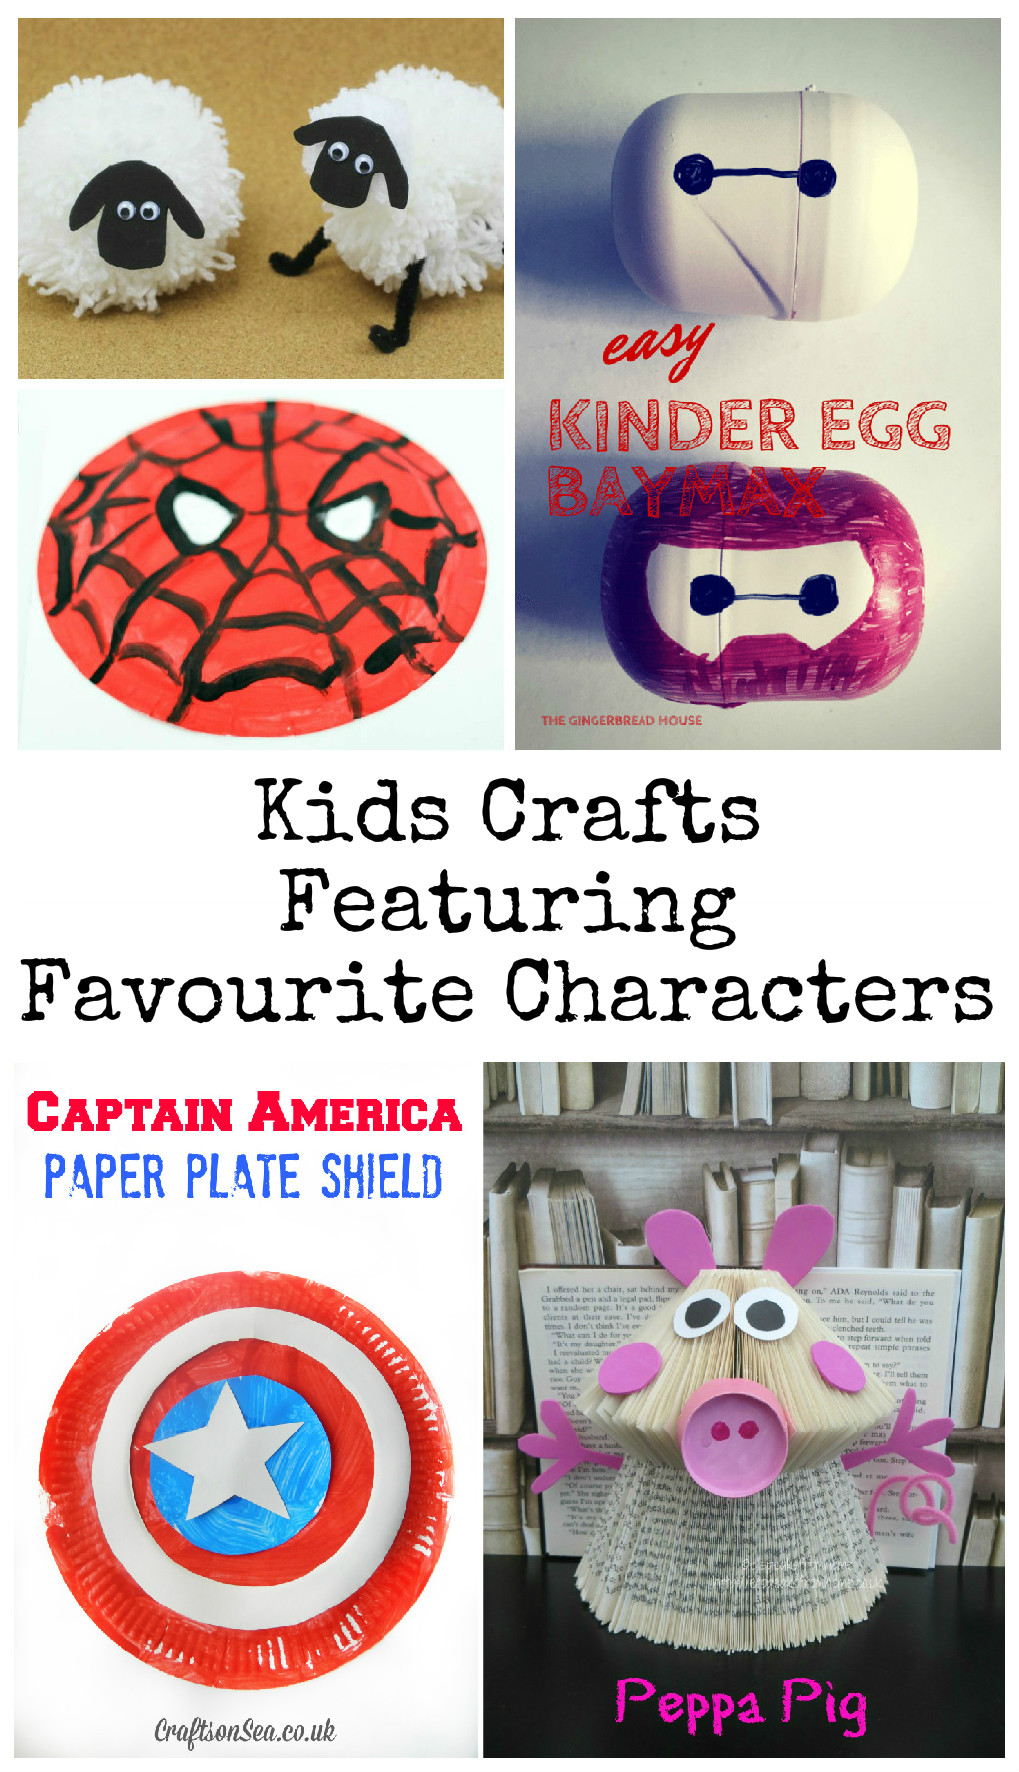 Kids crafts featuring favourite characters, spiderman, baymax, peppa pig, captain america, shaun the sheep